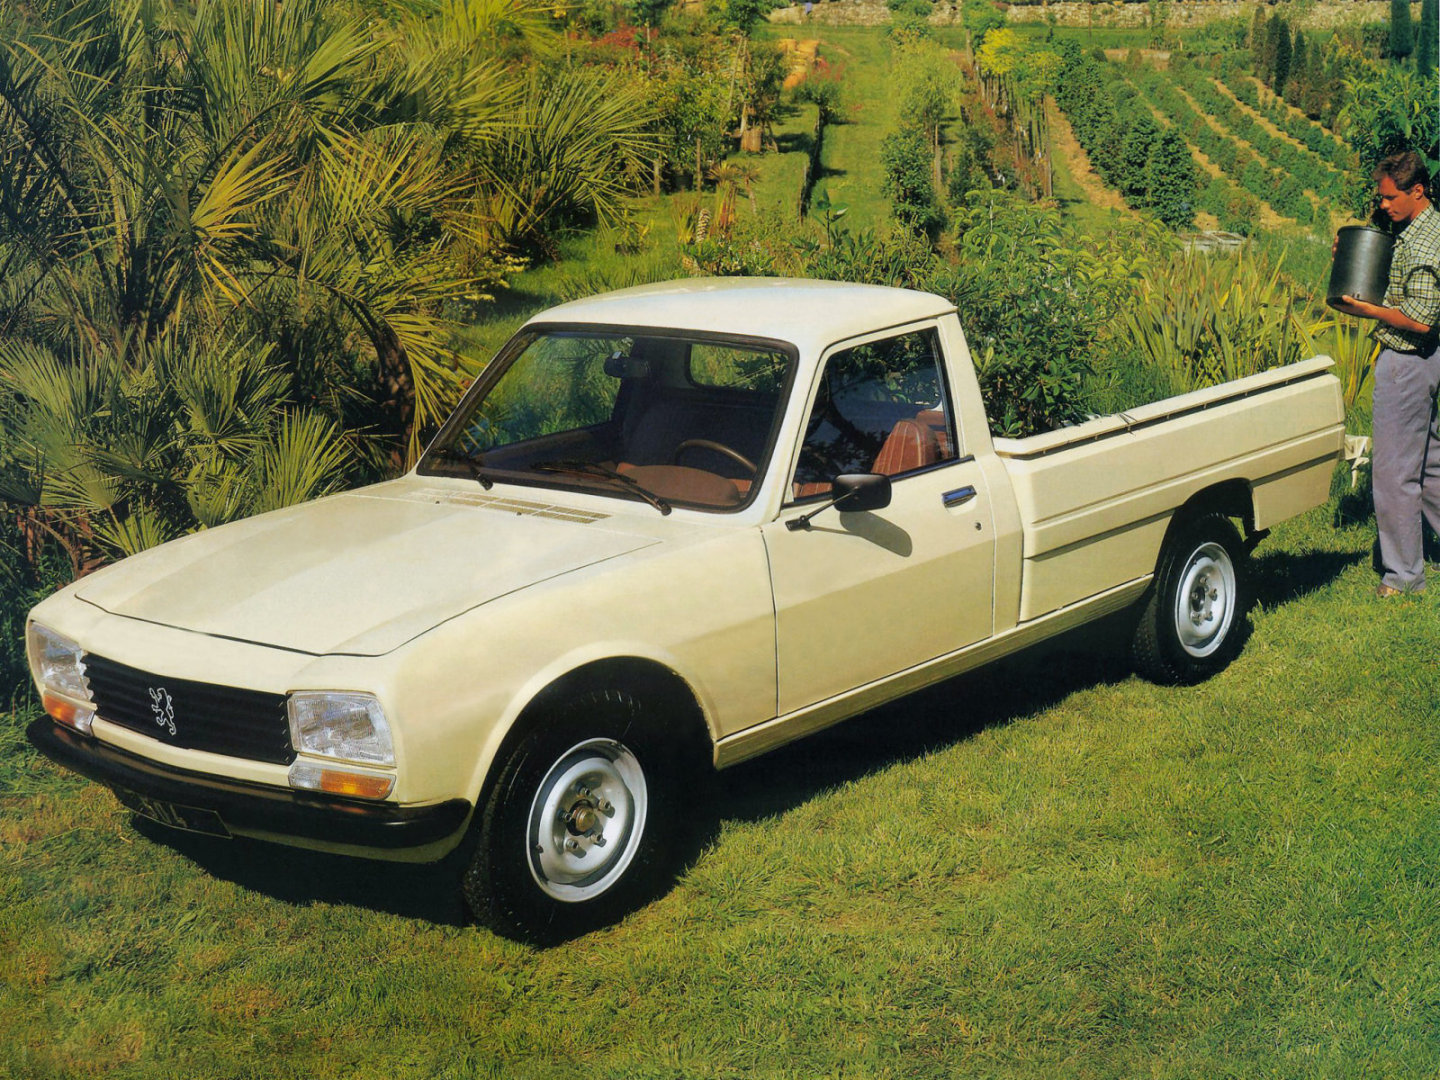 1970 Peugeot 504 Pick Up Carsaddiction Com